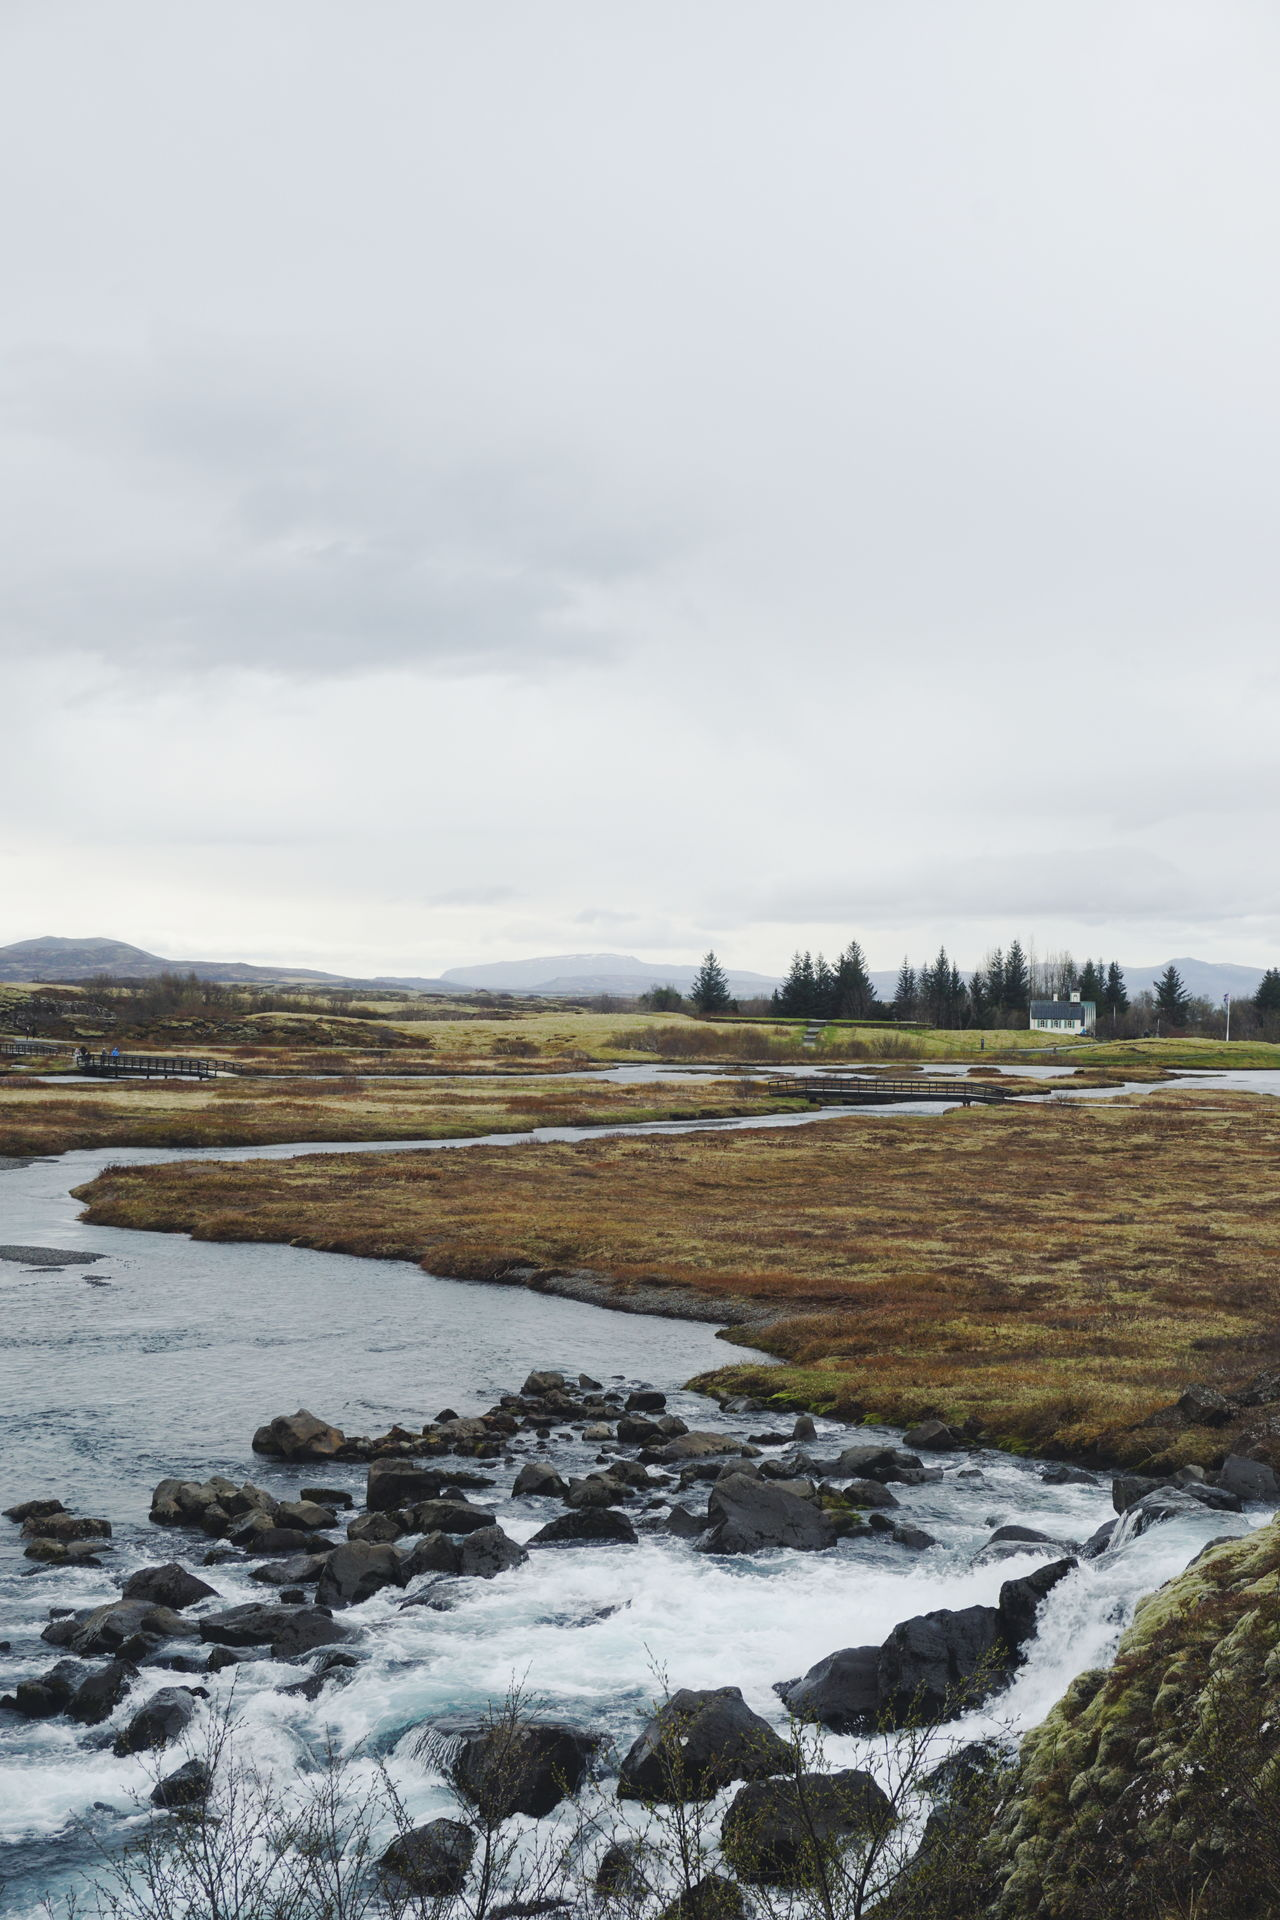 Thingvellir National Park Iceland Beauty In Nature Cloud - Sky Day Golden Circle Hot Spring Iceland Iceland Trip Iceland_collection Icelandtrip Landscape Nature No People Outdoors Scenics Sky Thingvellir Thingvellir National Park Tranquil Scene Tranquility Travel Destinations Tree Water þingvellir The Great Outdoors - 2017 EyeEm Awards